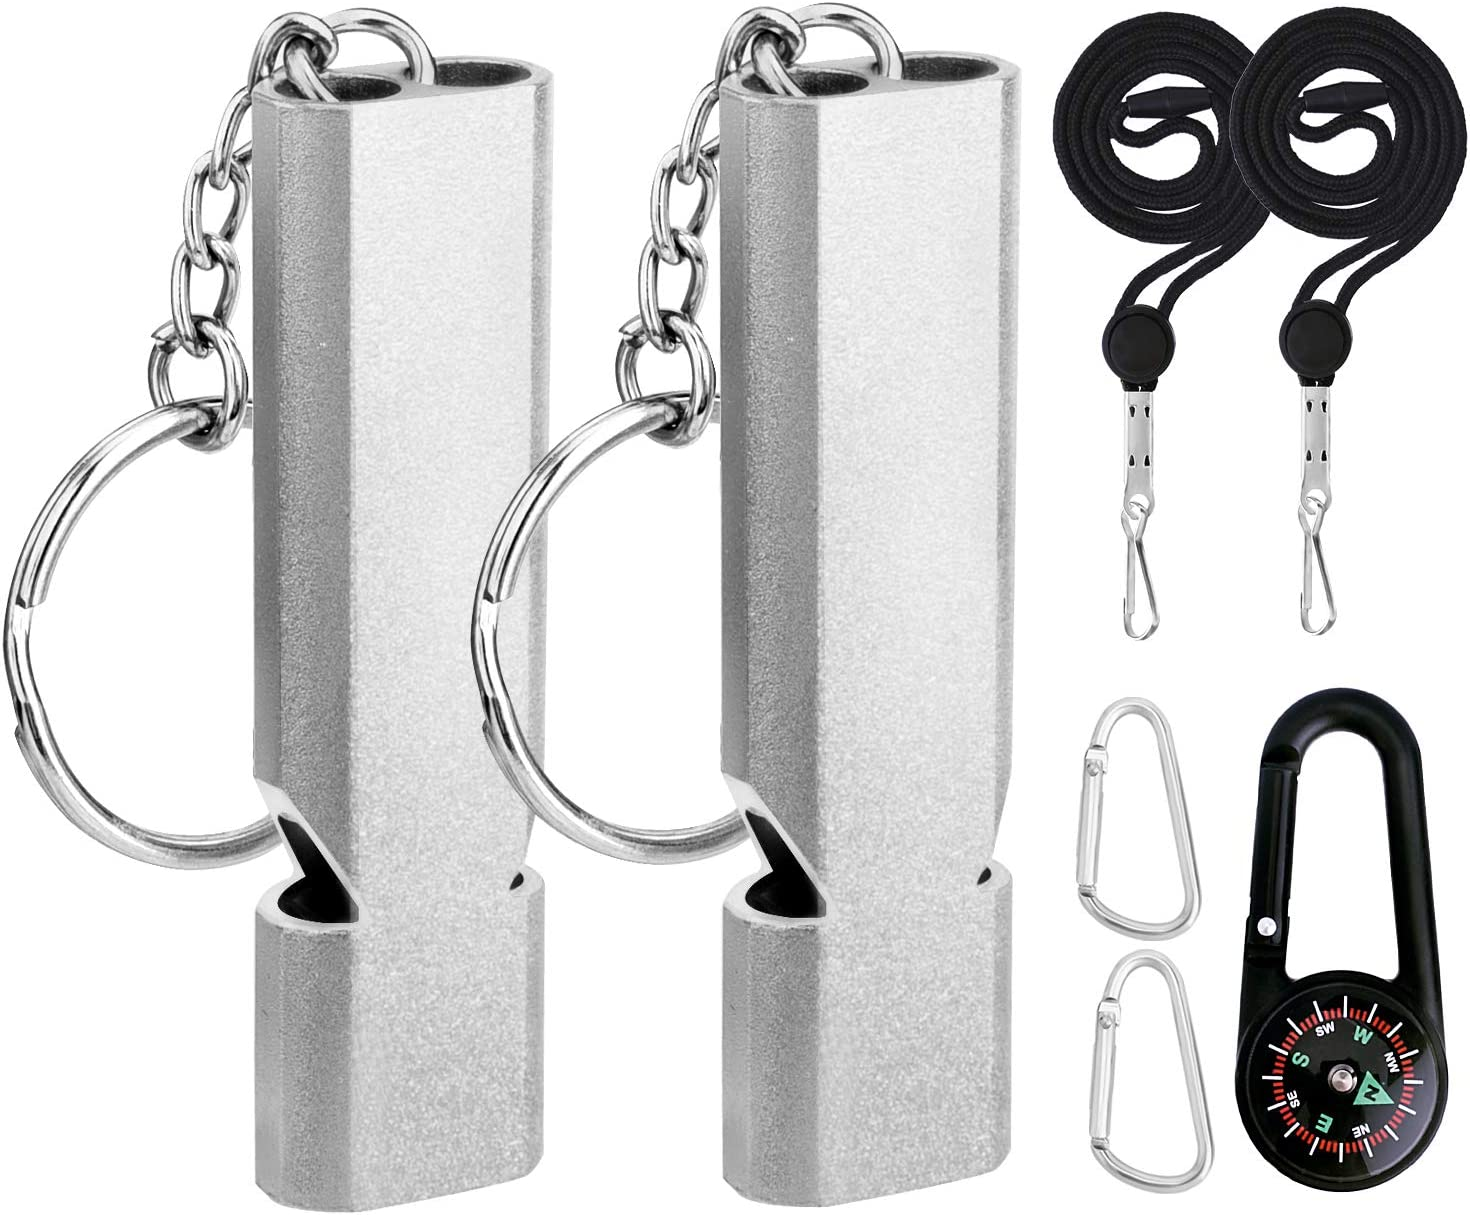 Emergency Whistle  High Frequency  Aluminum  1x Piece  Gray